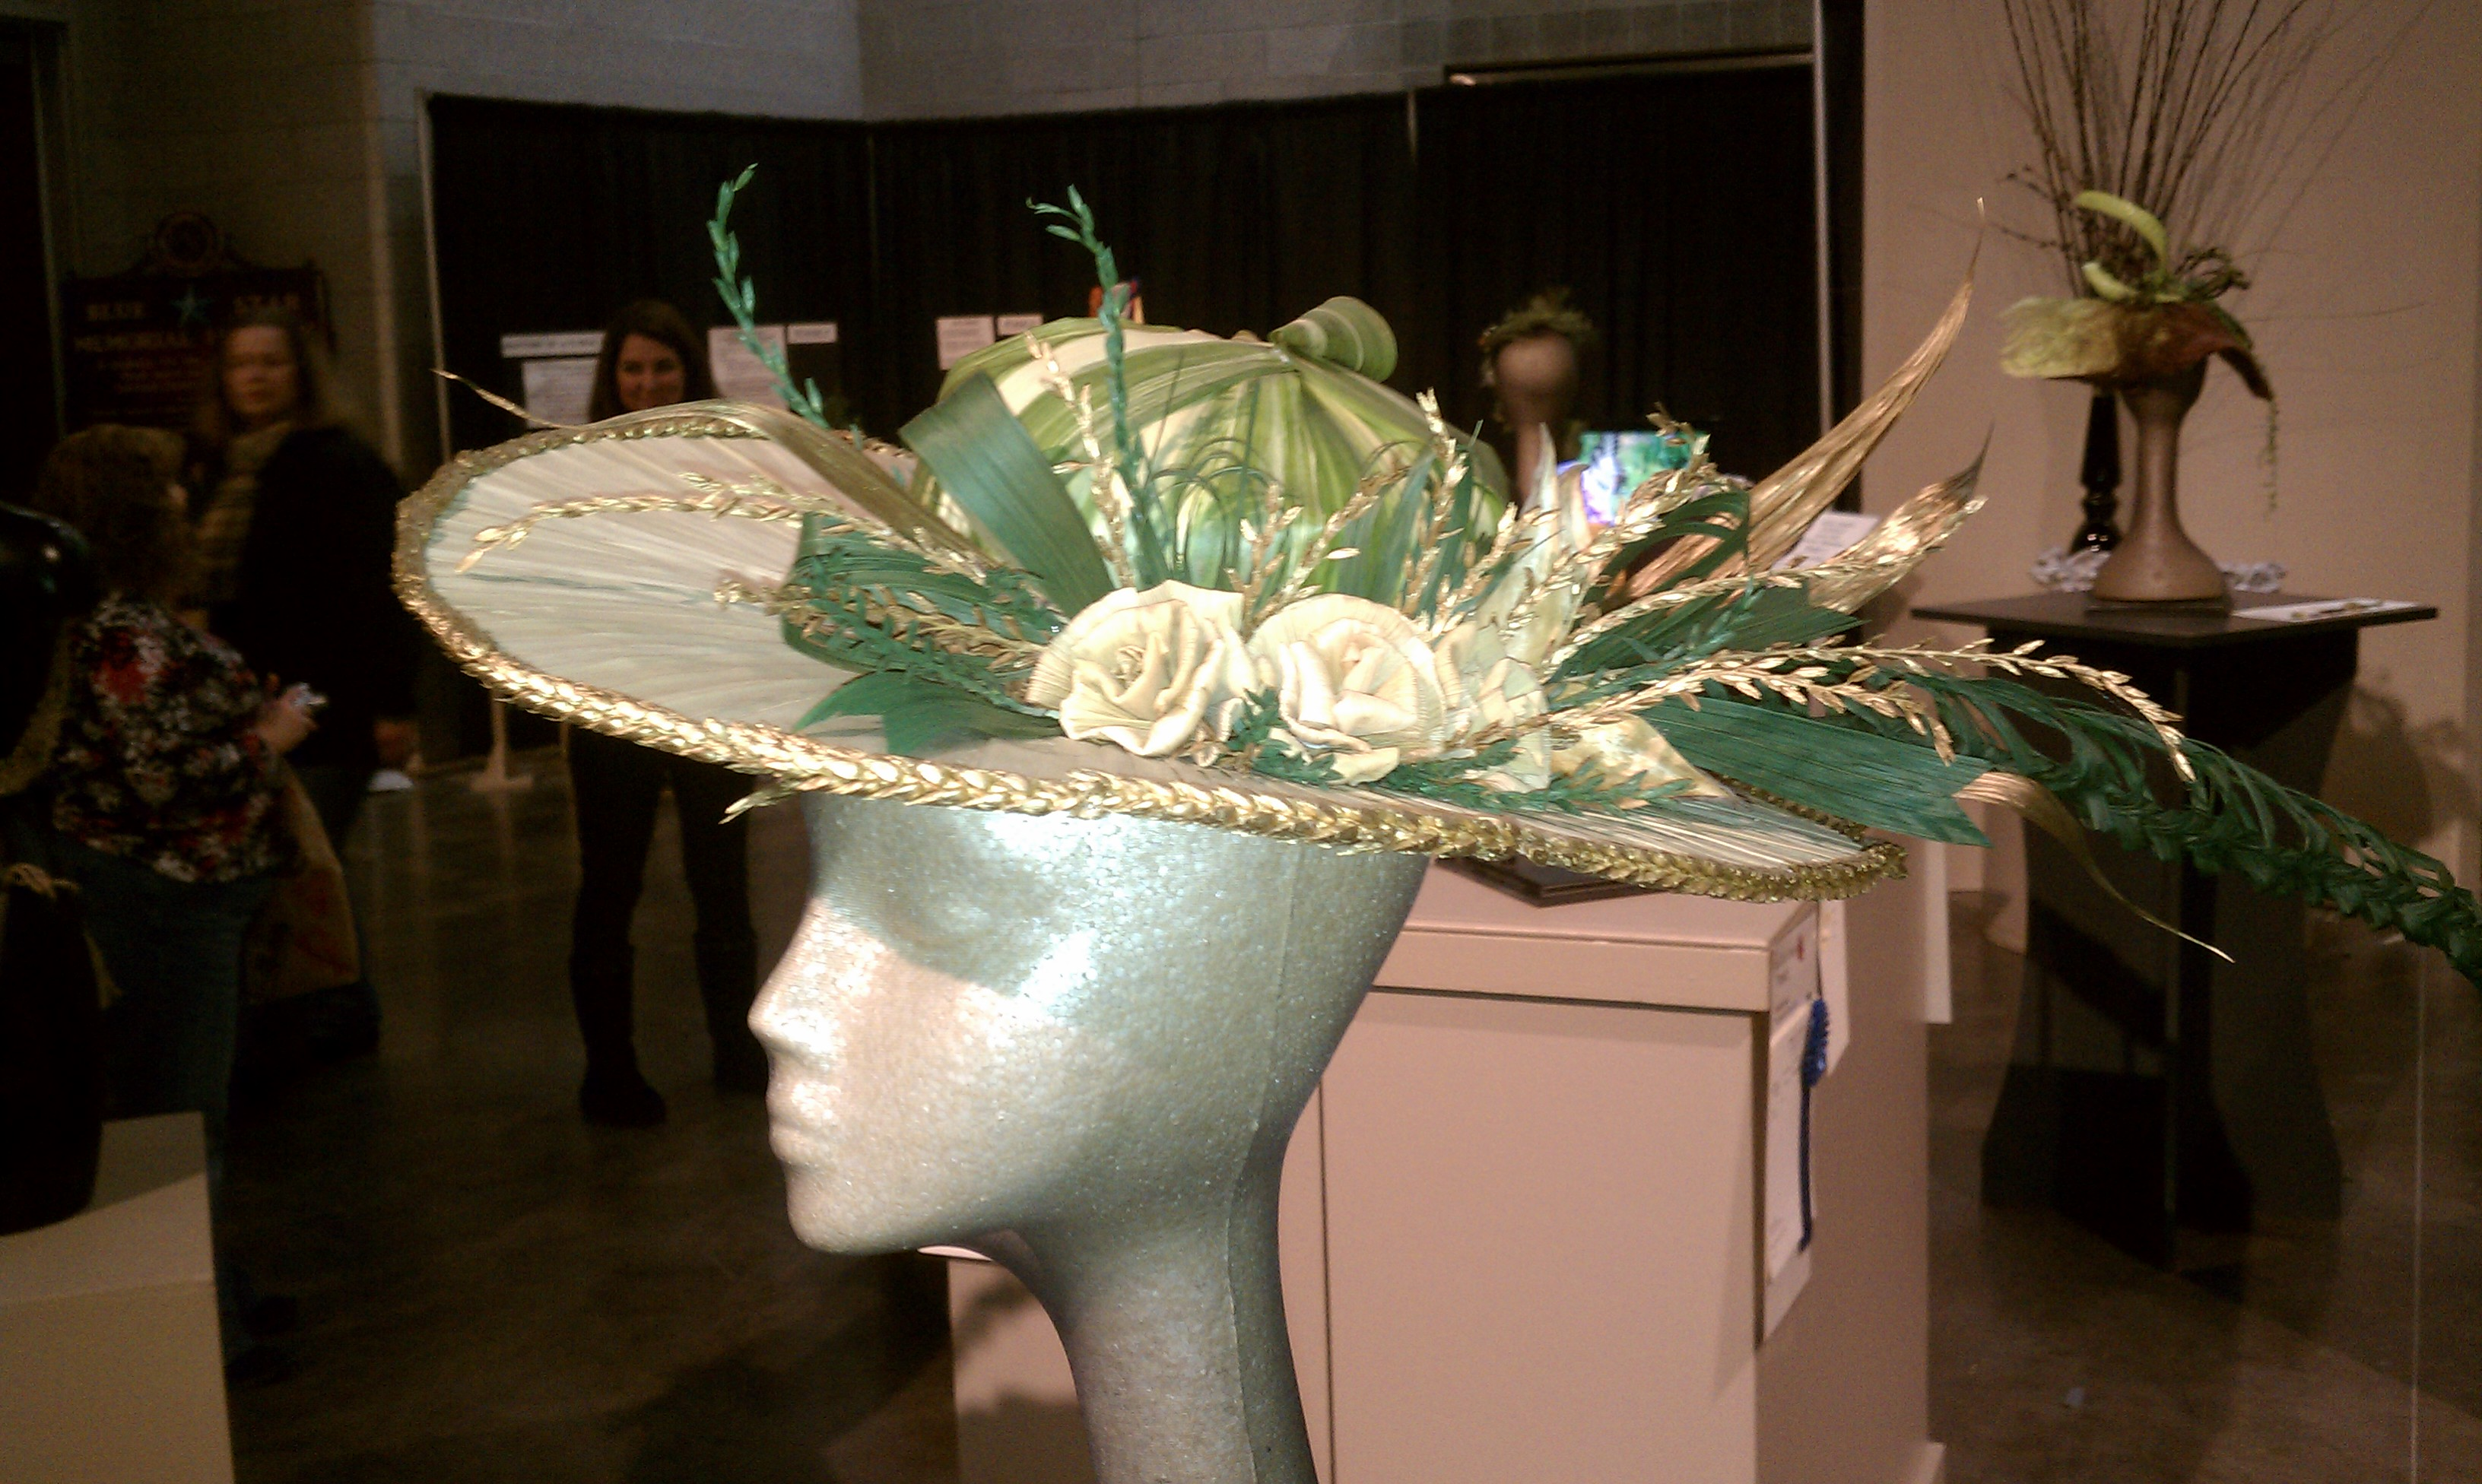 Bikinis hats and gardens on display at ri flower show for Hat display ideas for craft shows